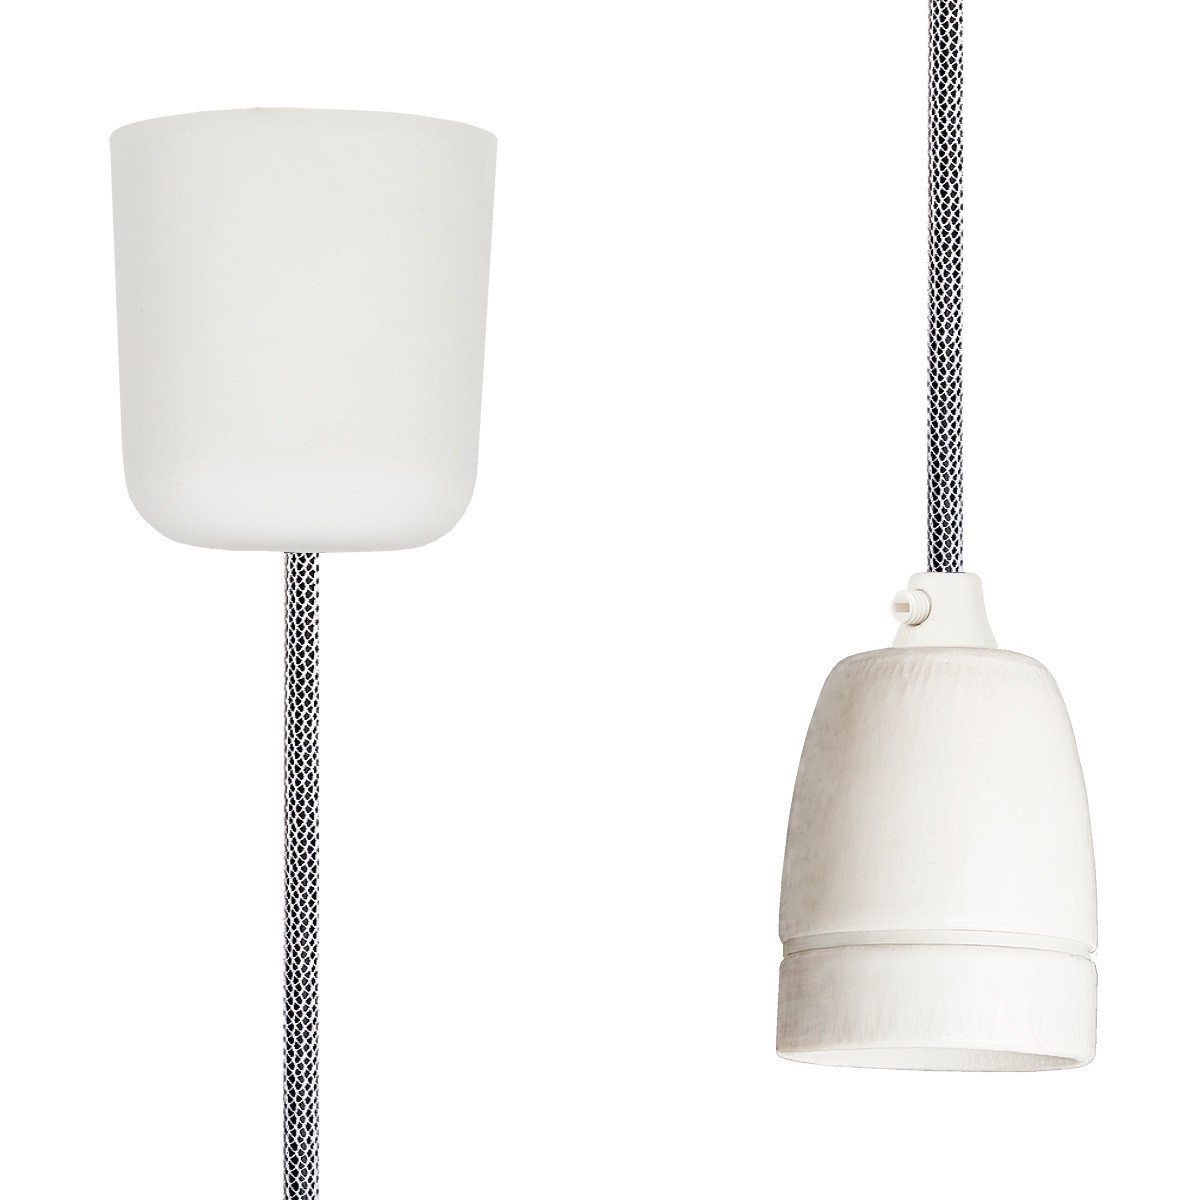 Pendant Lamp Porcelain Shiny White-Black Netlike